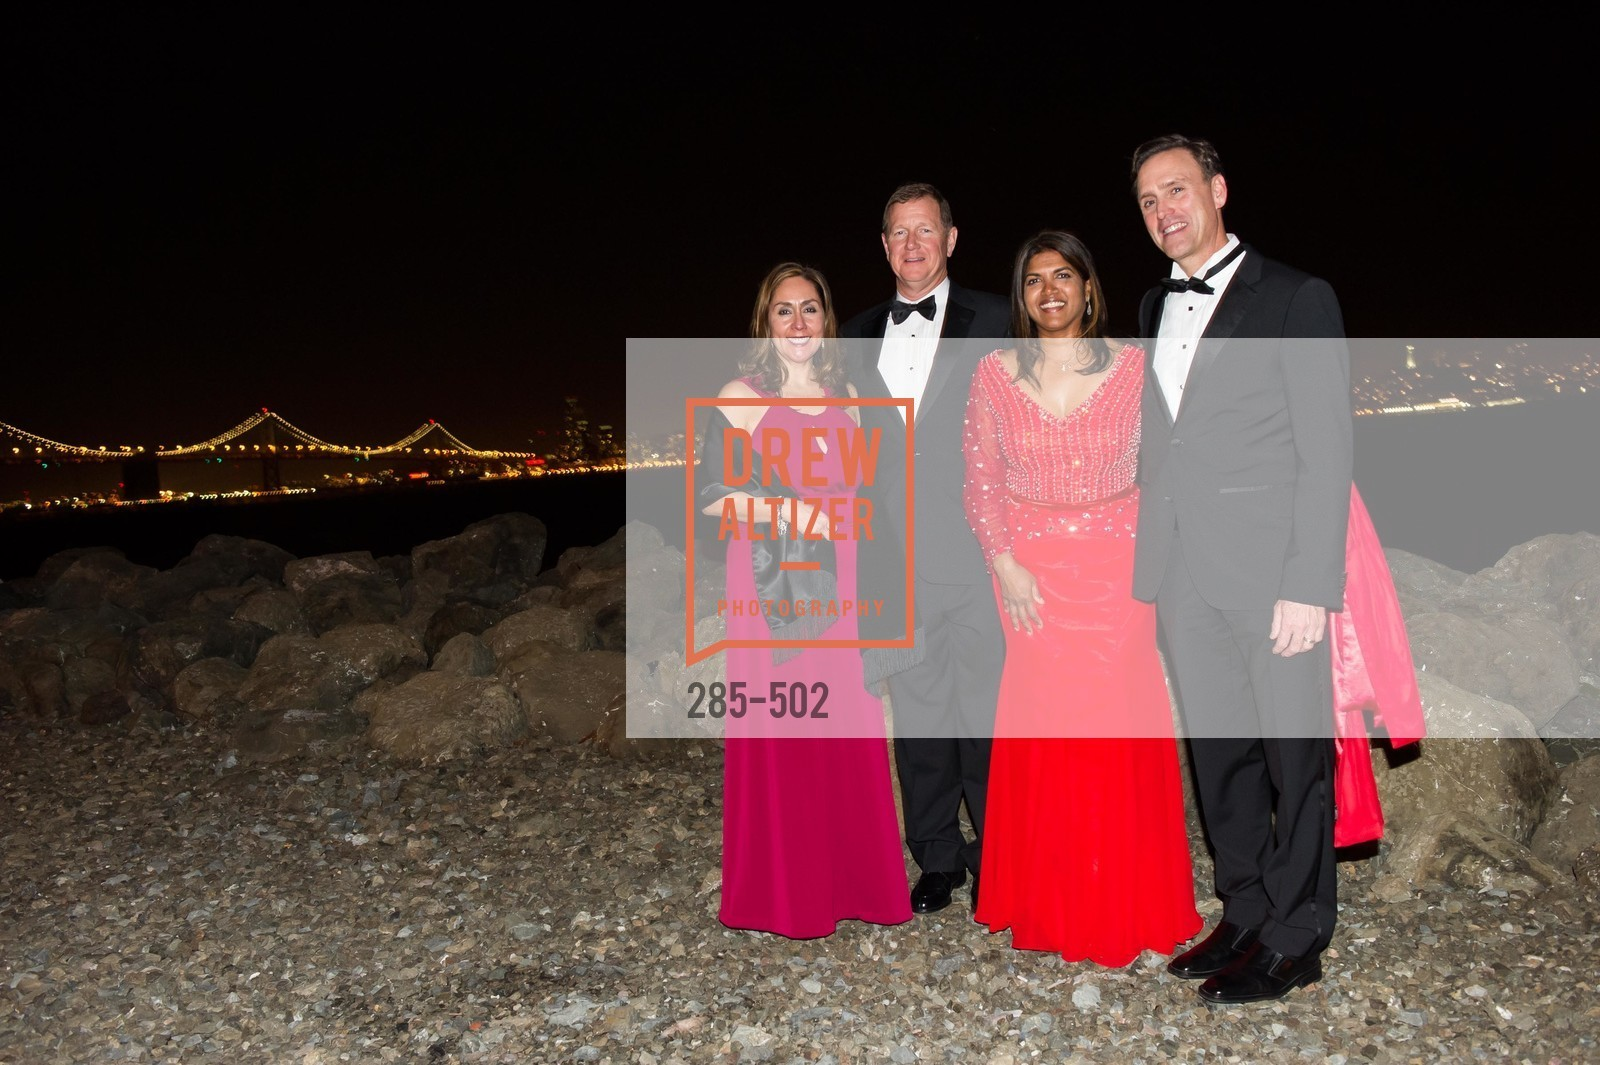 Naomi Chavez Peters, Christopher Peters, Manjula Noone, Patrick Noone, 2014 RED CROSS Gala Honoring Paula Downey as the American Red Cross Bay Area Chapter Humanitarian CEO of the Year, US. Treasure Island (The Great Lawn), April 5th, 2014